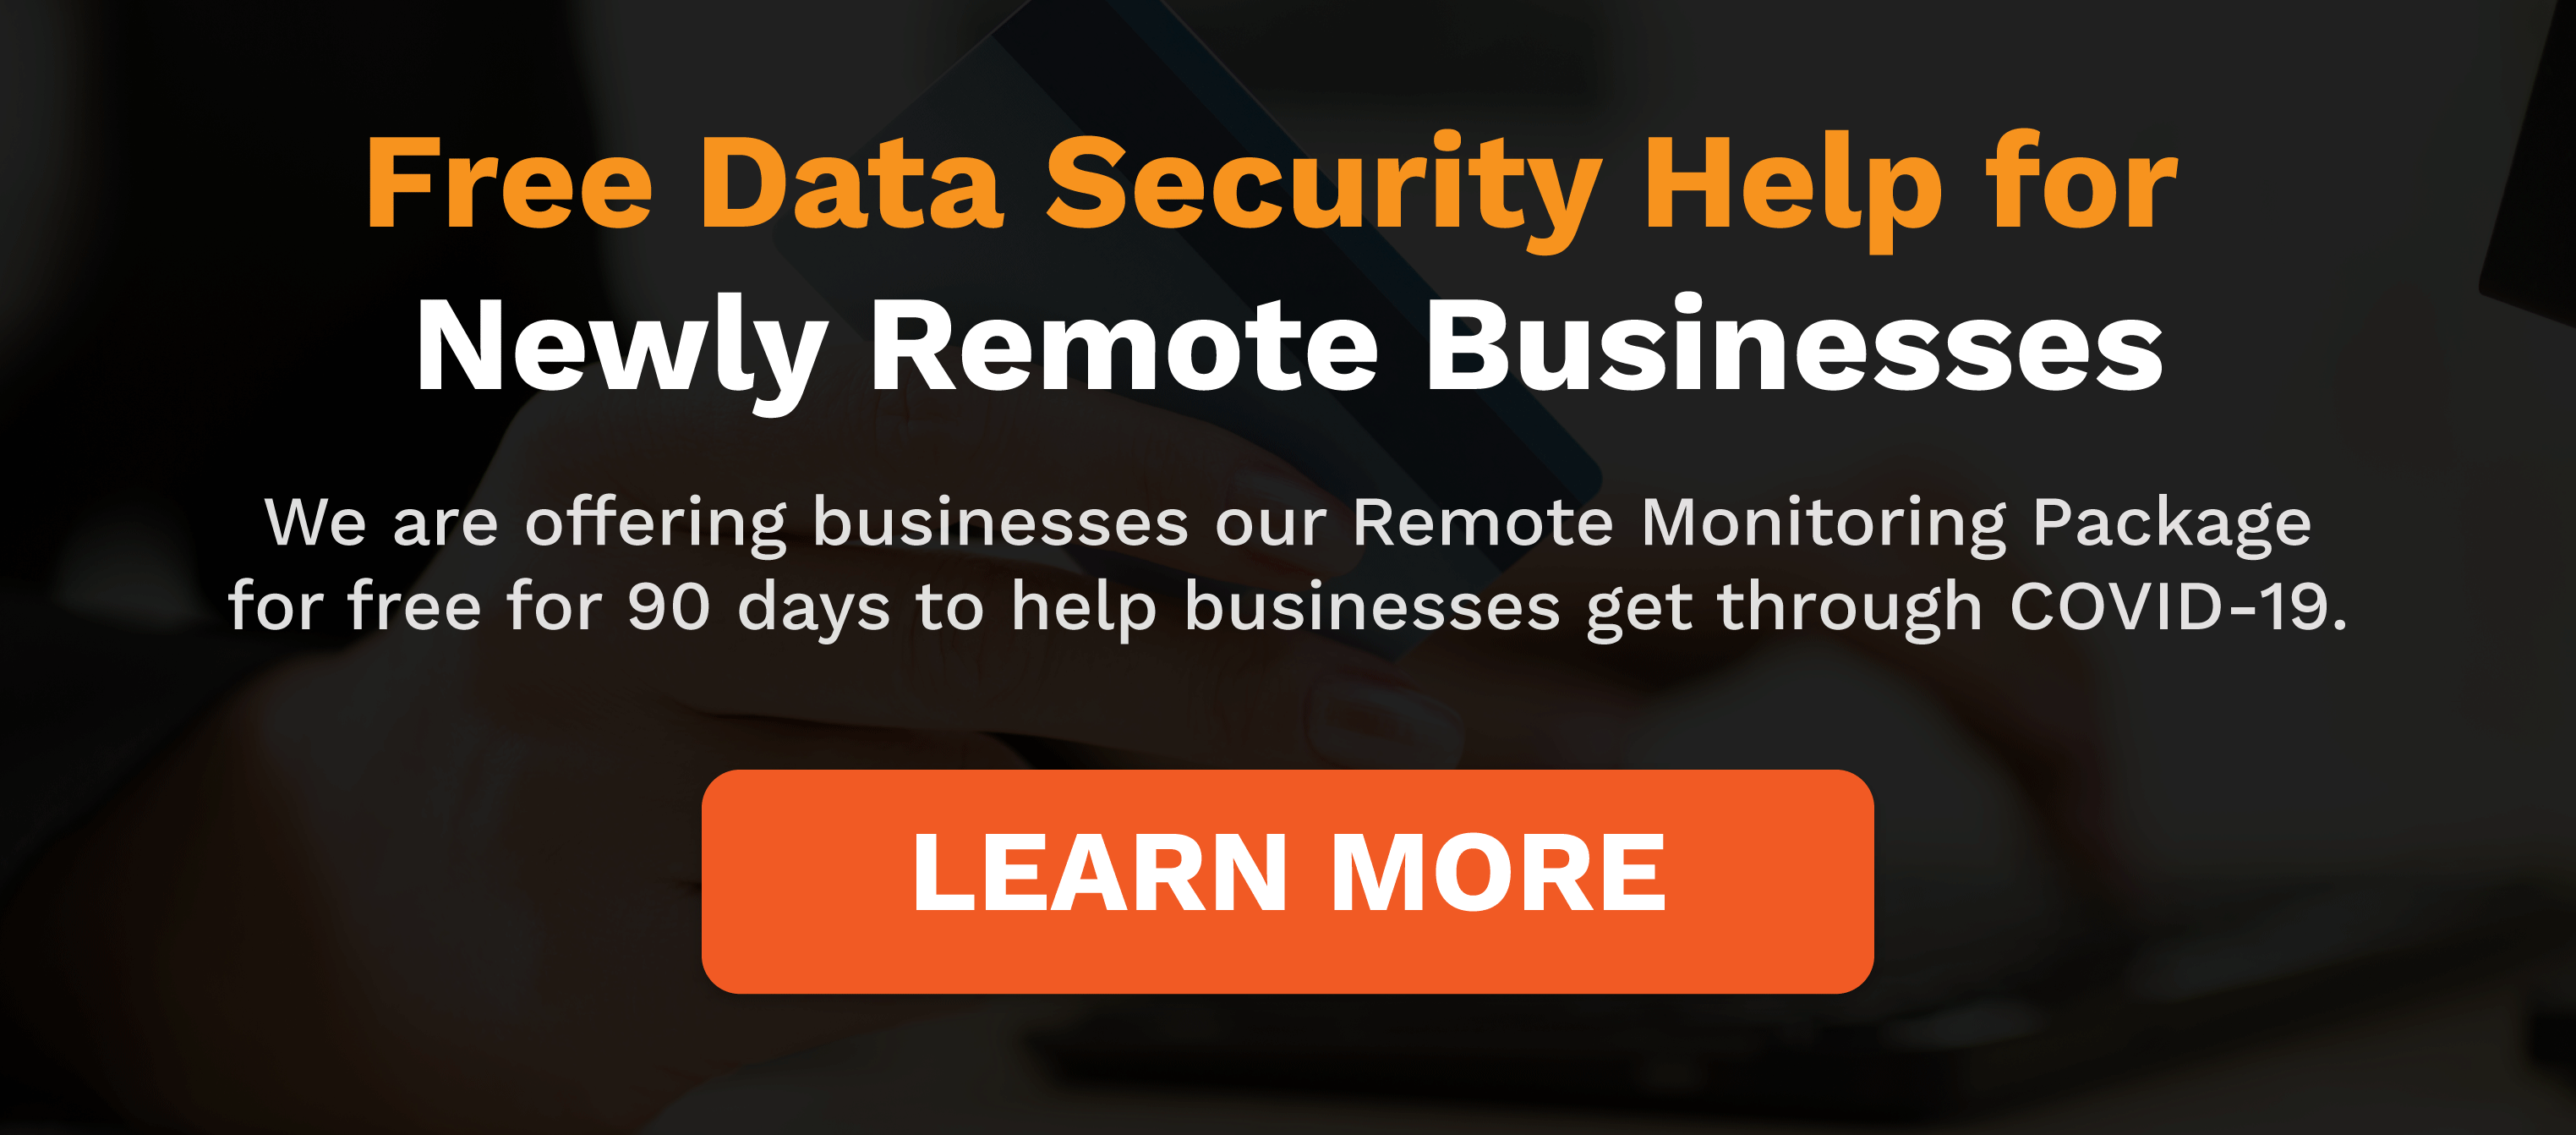 Free Data Security Help